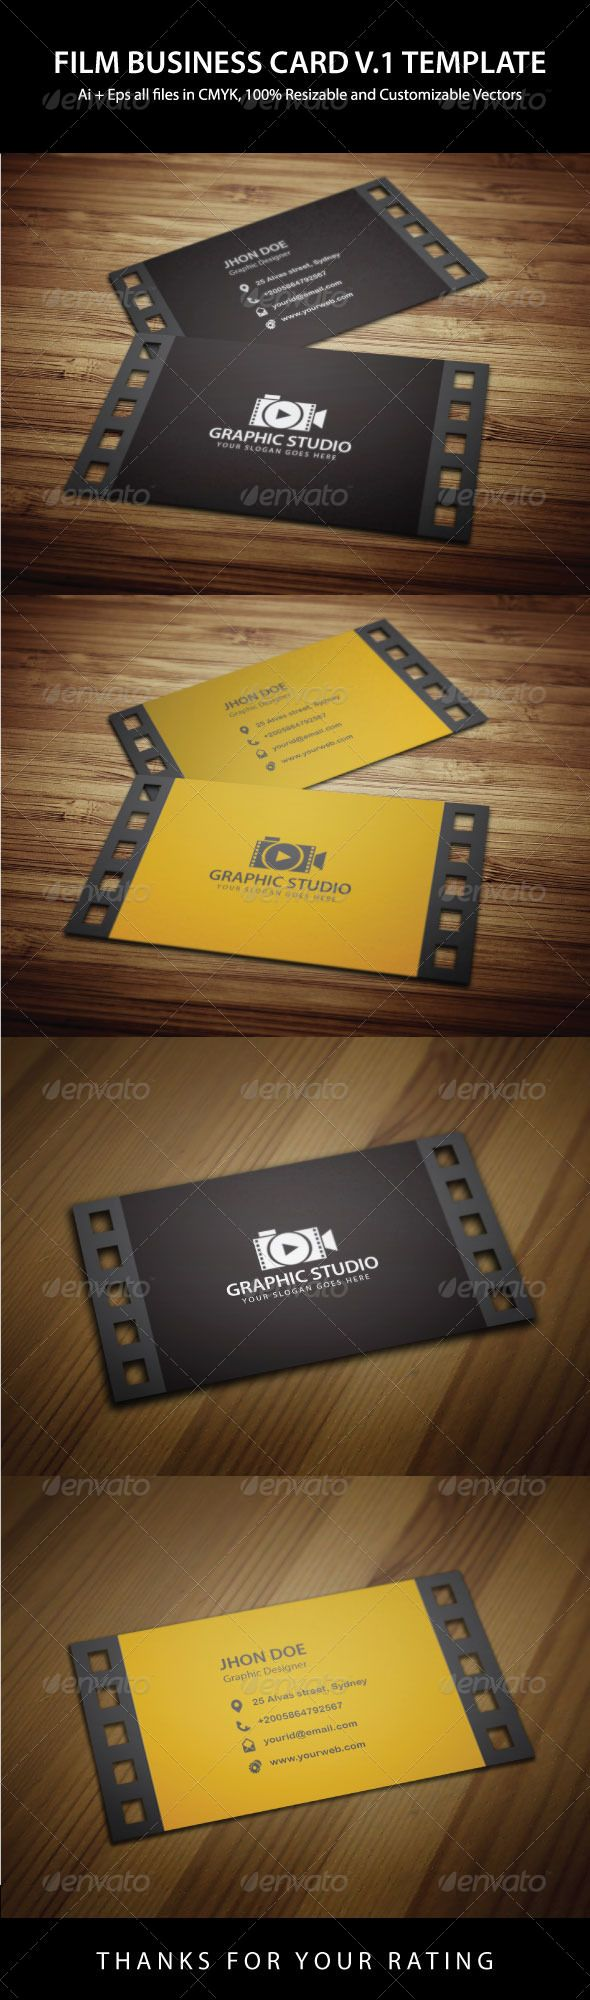 Filmography Business Card Template #design Download: http://graphicriver.net/item/filmography-business-card-template/5935702?ref=ksioks